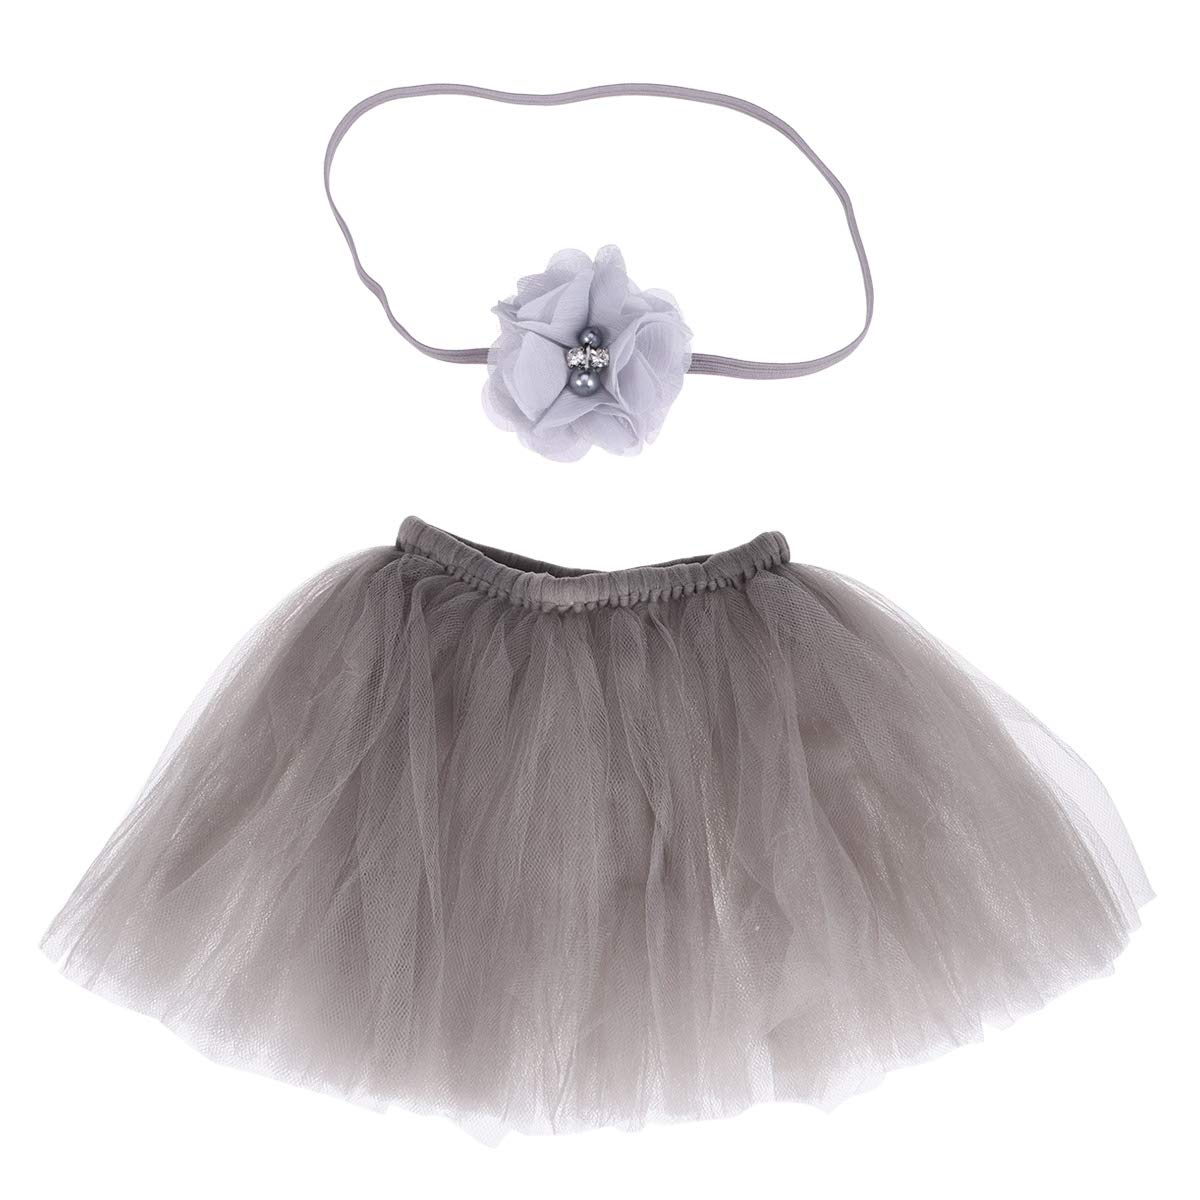 Newborn Baby Girl Tutu Jupe Bandeau Set Photo Photographie Prop Costume Outfit